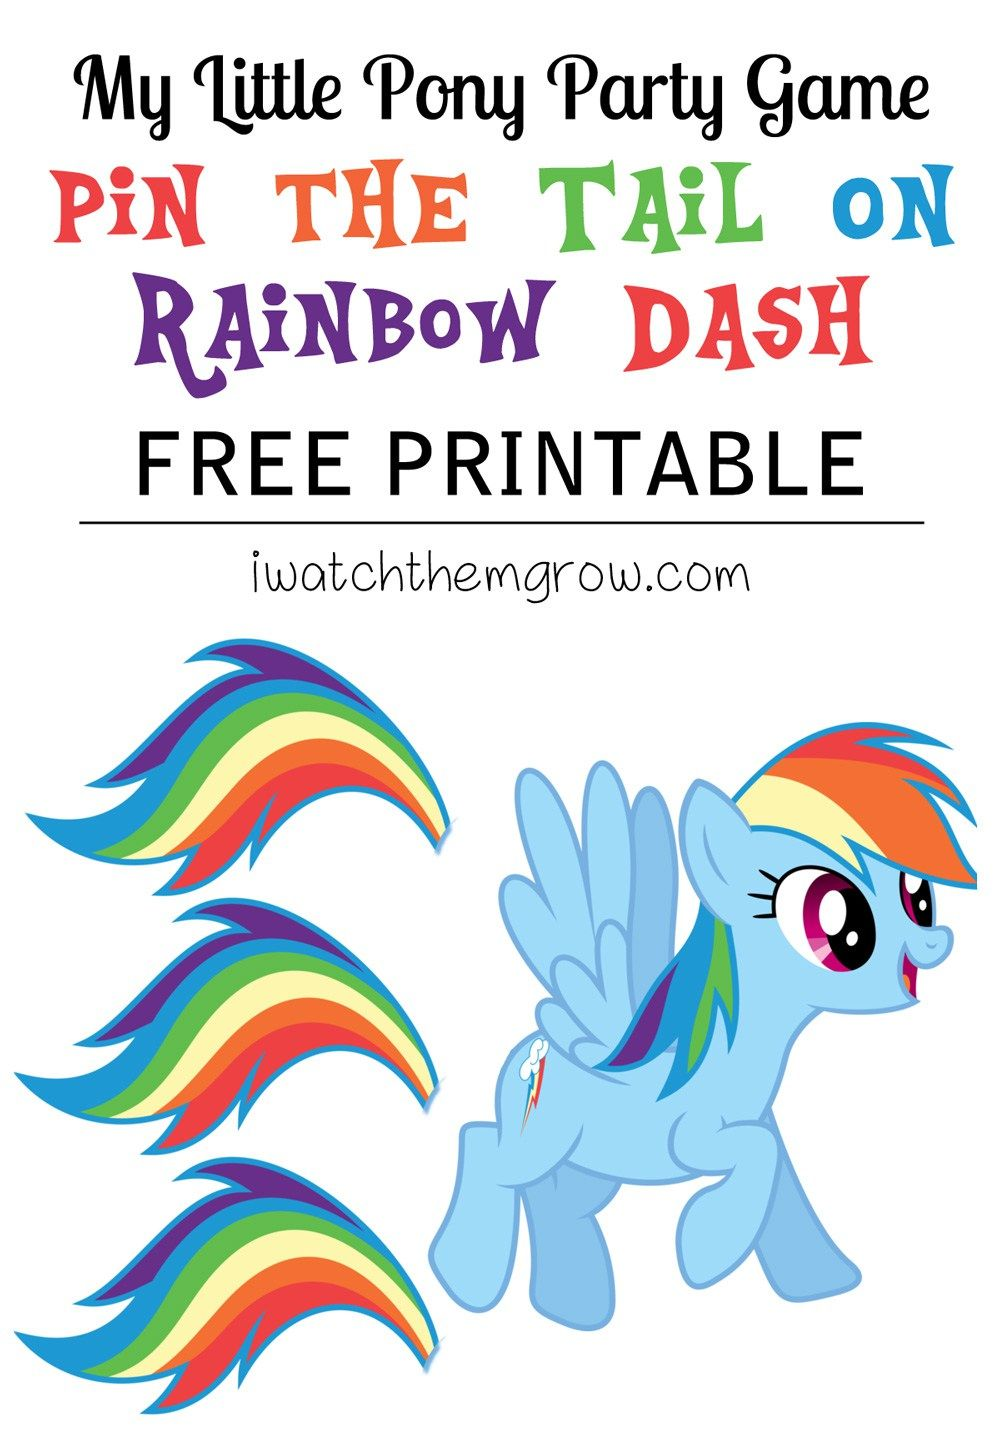 Pin the tail on rainbow dash free printable pinterest pony free printable pin the tail on rainbow dash game perfect for a my little pony party maxwellsz